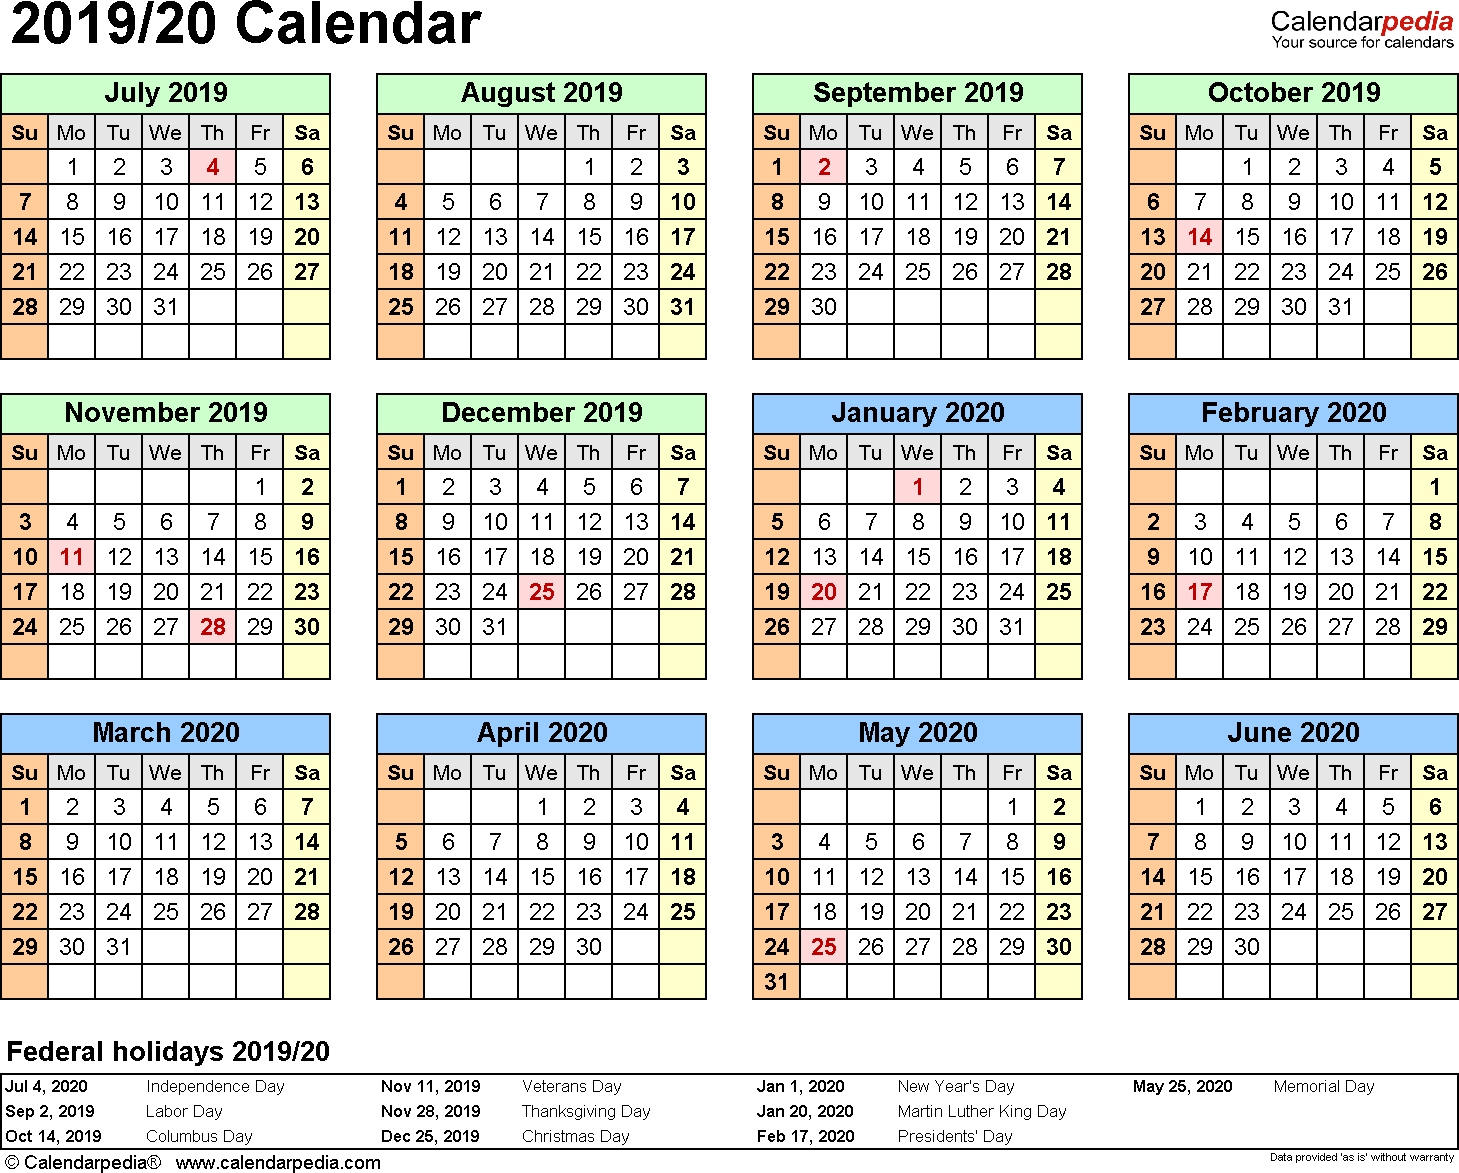 Split Year Calendar 2019/20 (July To June) - Pdf Templates intended for Printable Calendars July 2019 To June 2020